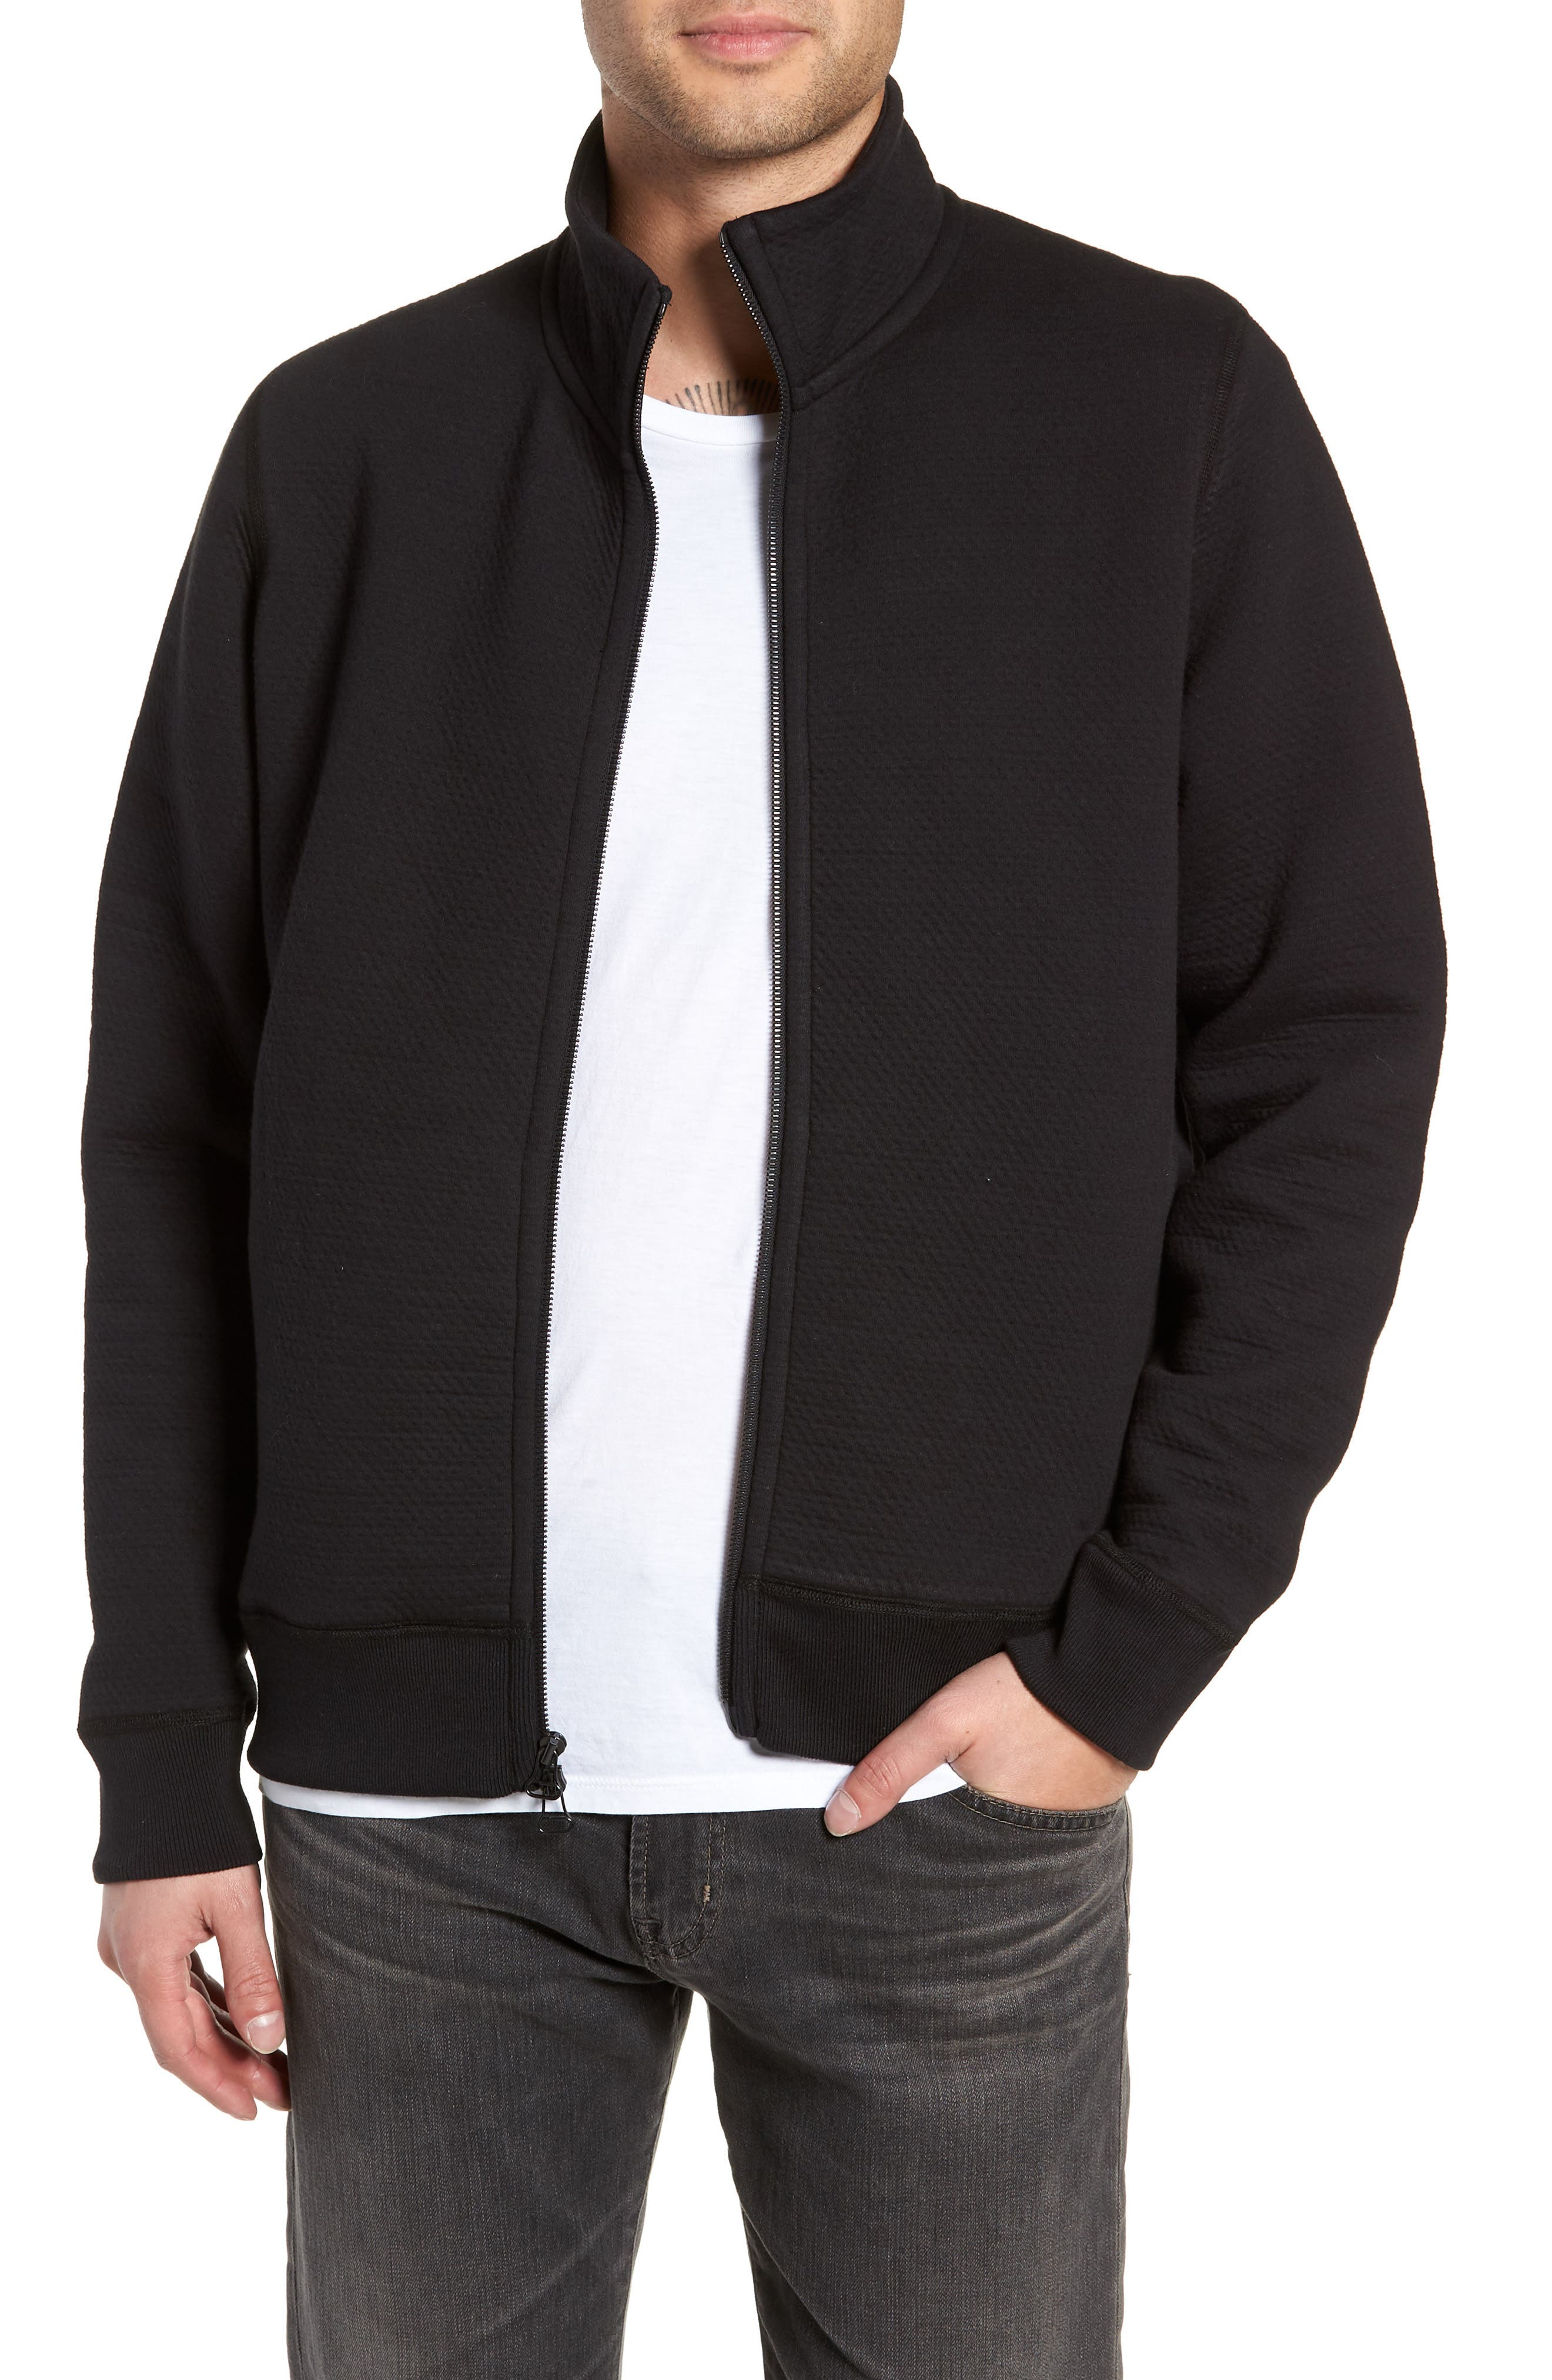 Cabin Fleece Jacket,                             Main thumbnail 1, color,                             BLACK